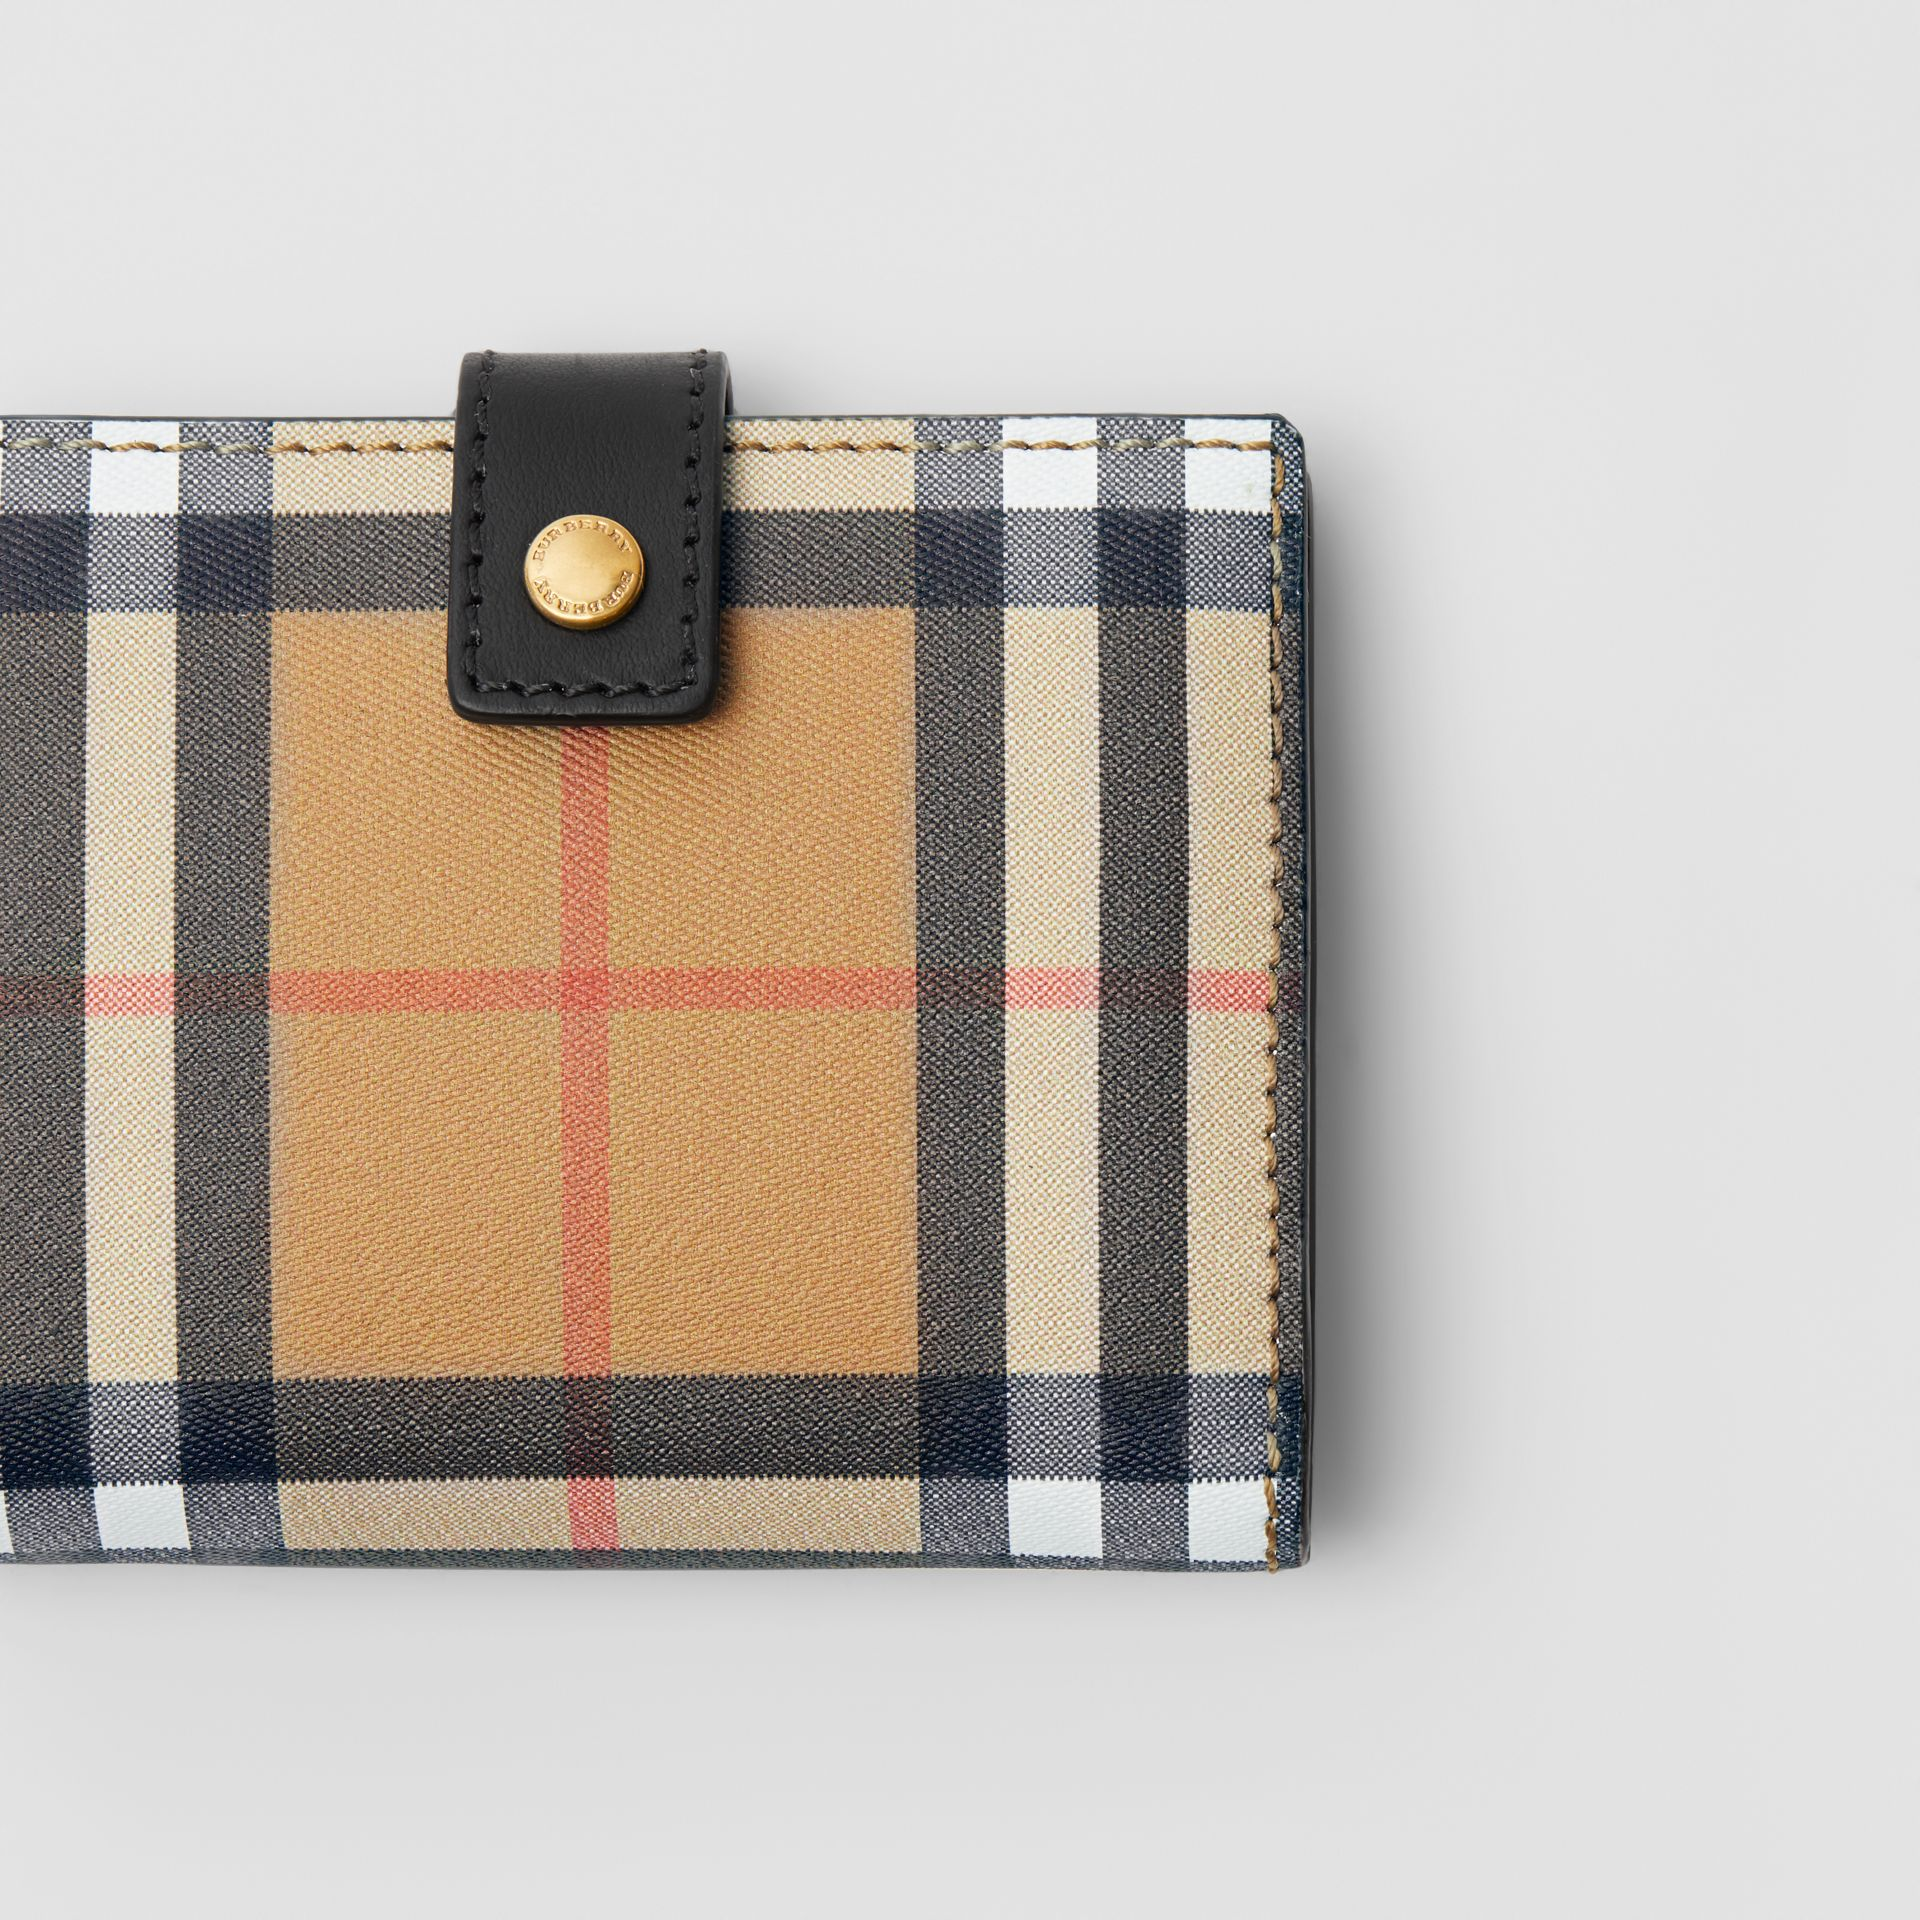 Small Vintage Check and Leather Folding Wallet in Black - Women | Burberry - gallery image 1